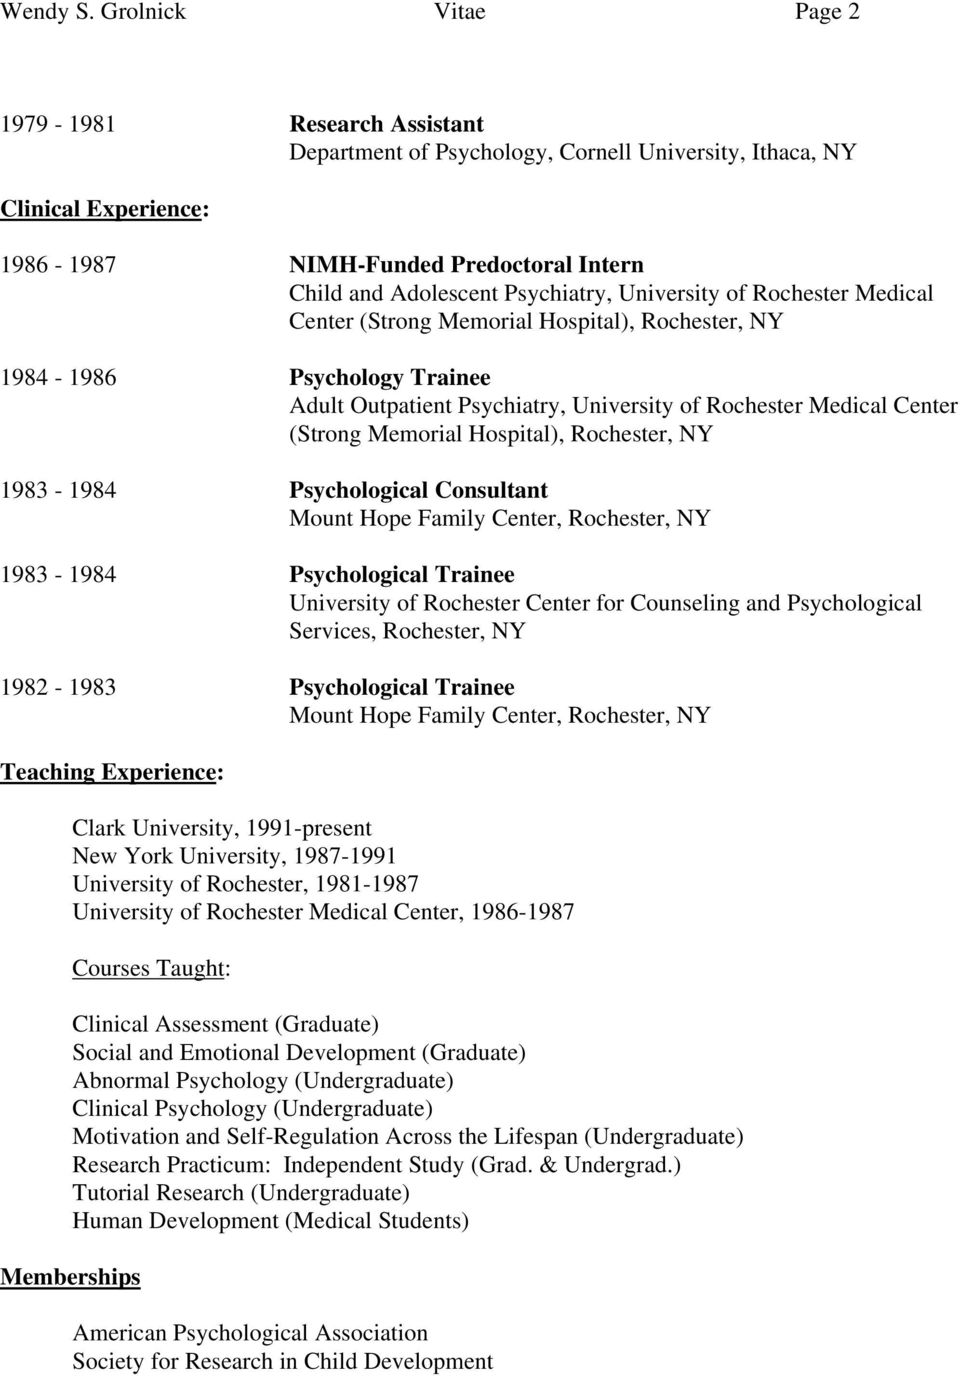 Psychiatry, University of Rochester Medical Center (Strong Memorial Hospital), Rochester, NY 1984-1986 Psychology Trainee Adult Outpatient Psychiatry, University of Rochester Medical Center (Strong